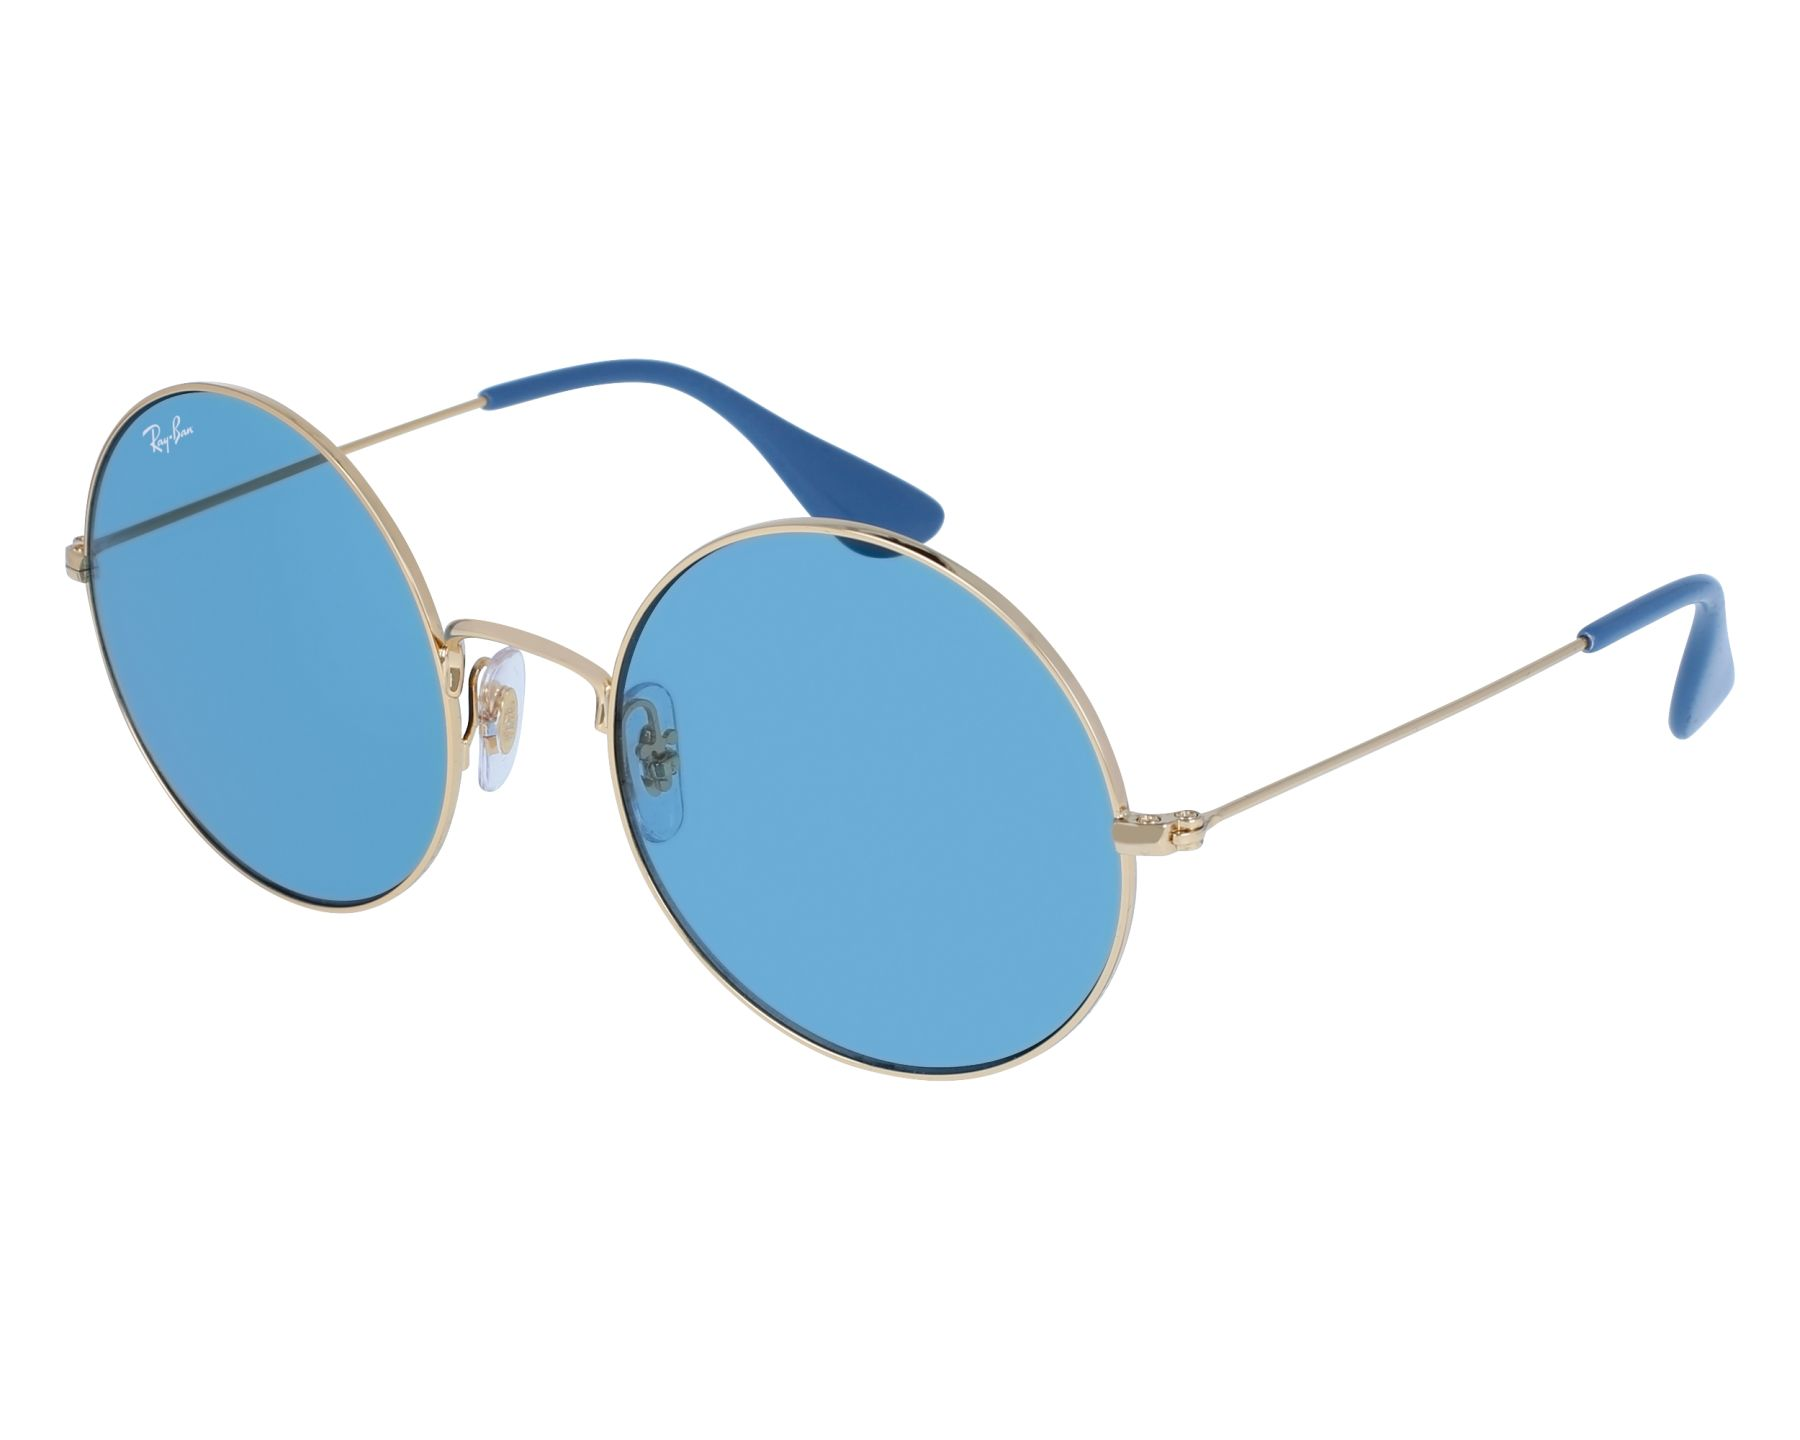 ed8b3dd97cd Sunglasses Ray-Ban RB-3592 001 F7 55-20 Gold front view